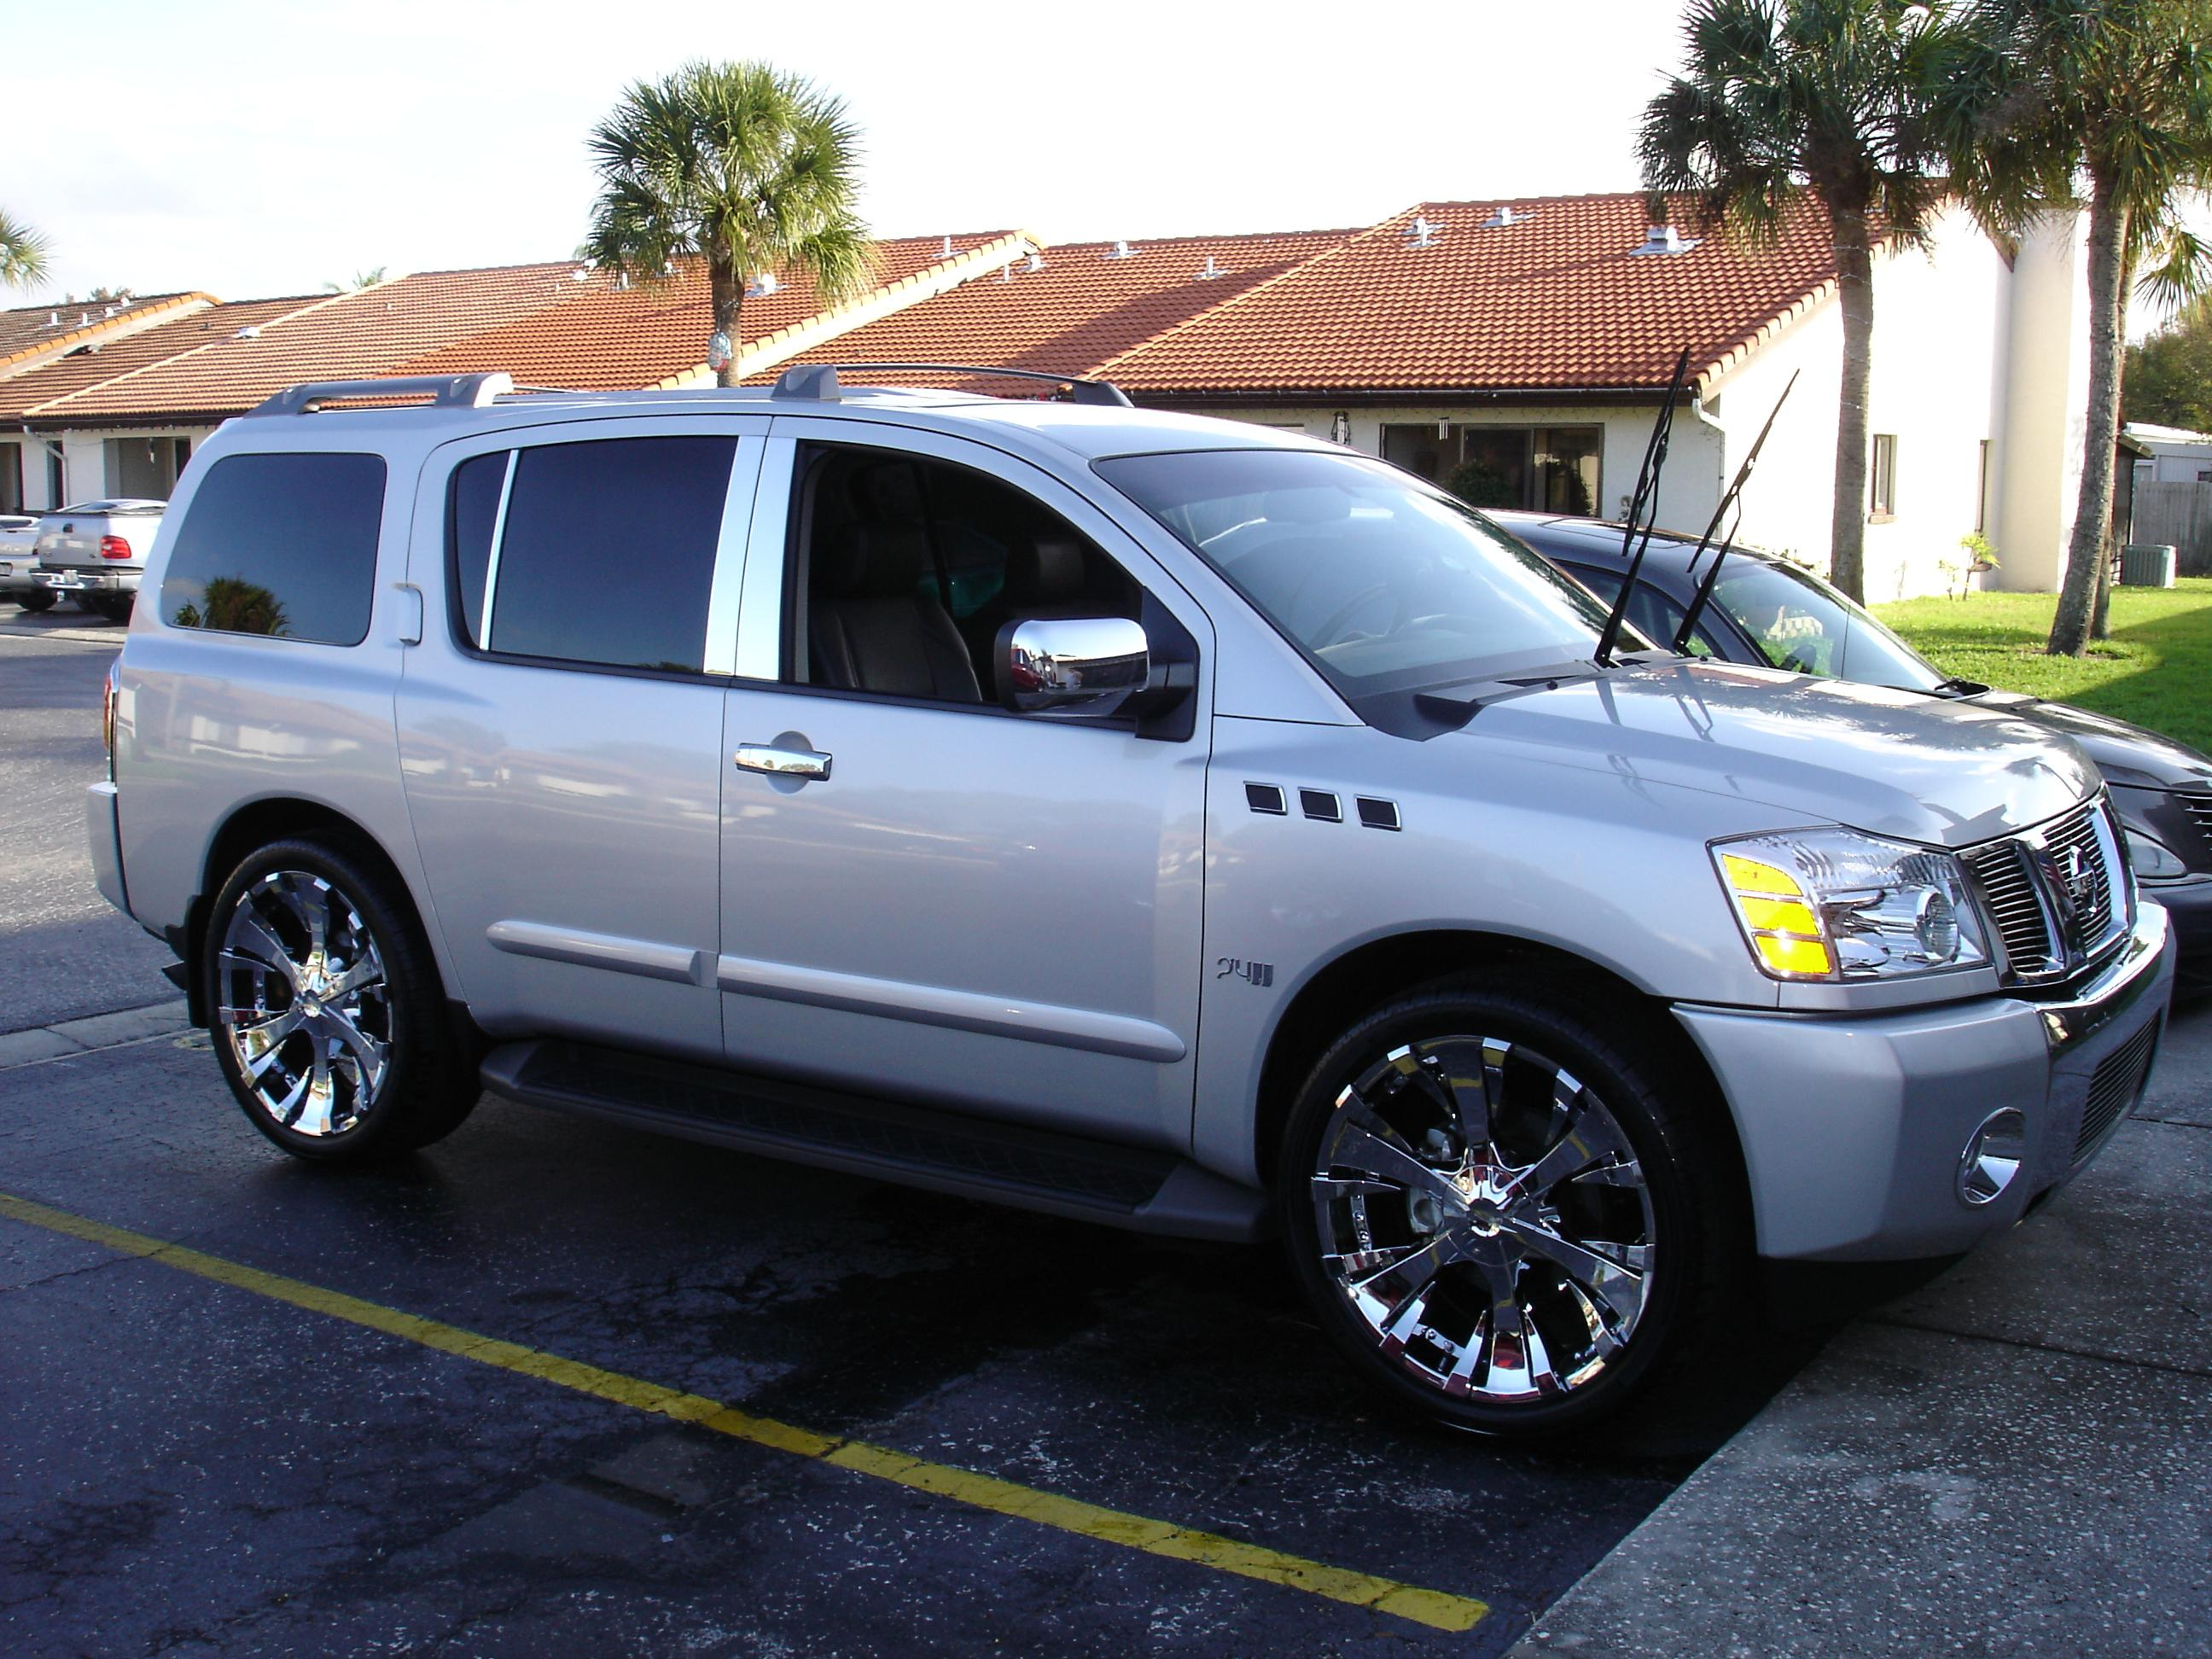 2006 nissan armada information and photos zombiedrive 2006 nissan armada 15 nissan armada 15 vanachro Images